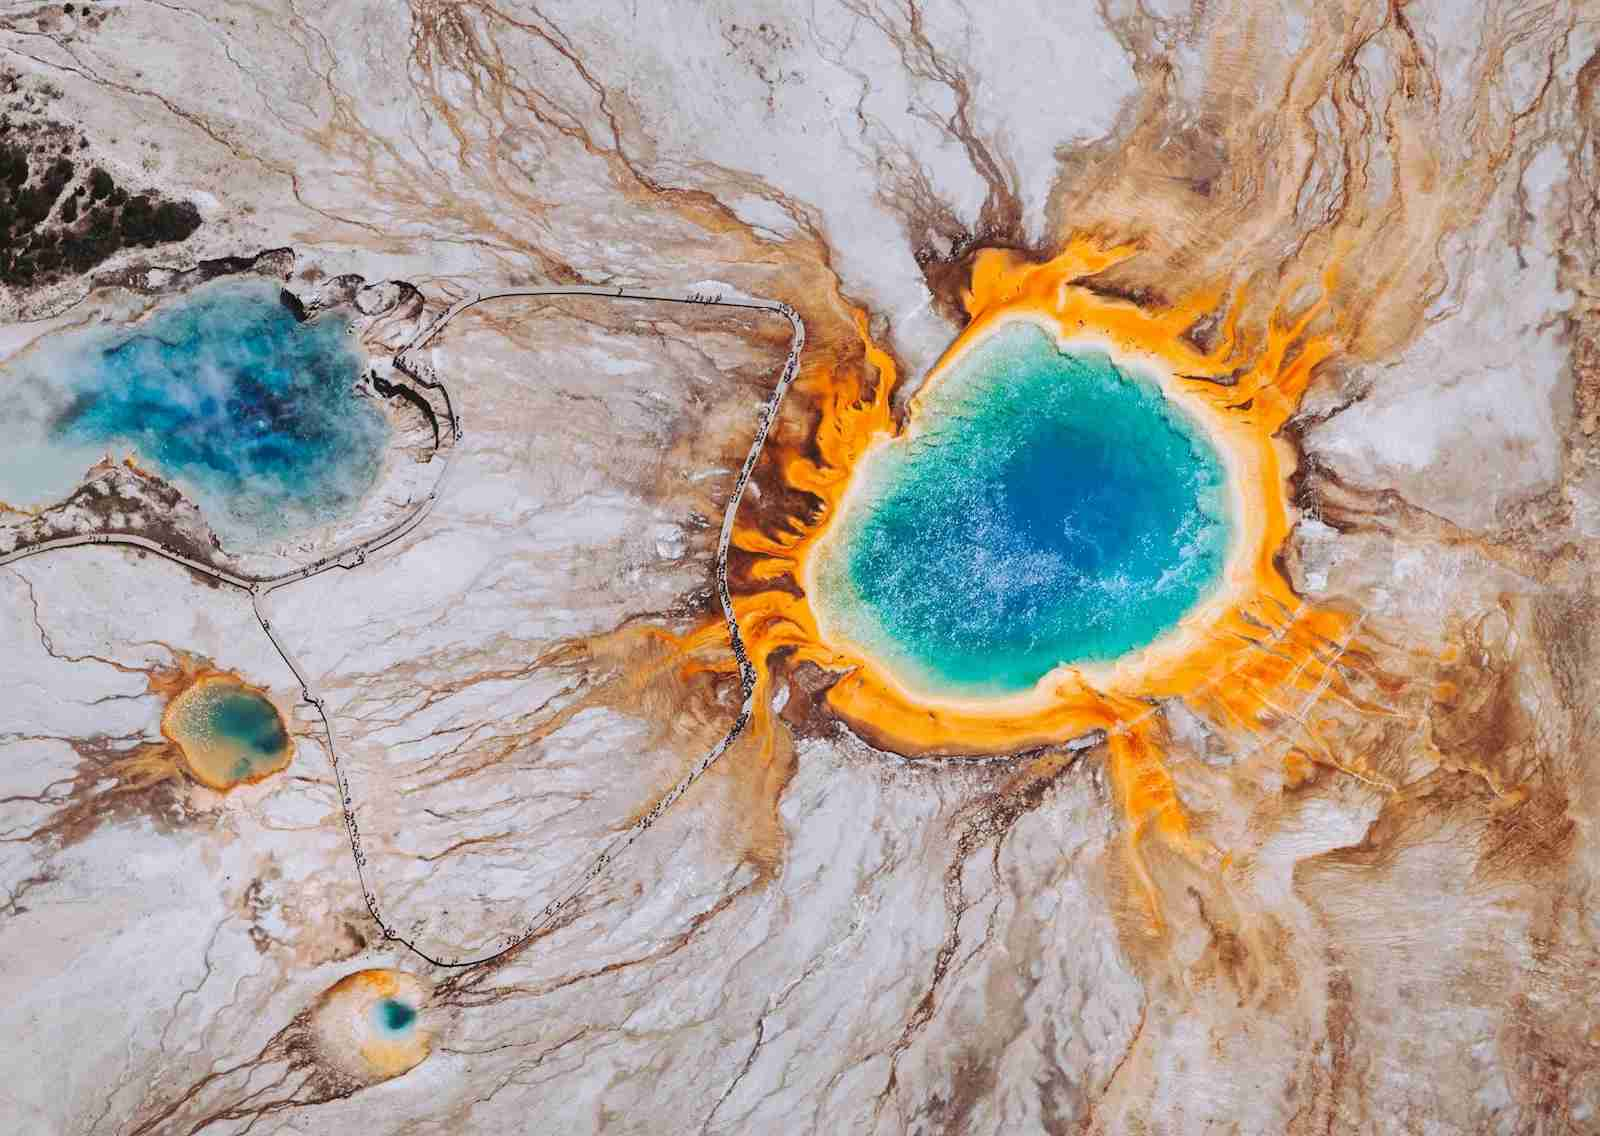 (Grand Prismatic Spring, Yellowstone National Park. Photo by Chris Leipelt/Unsplash)